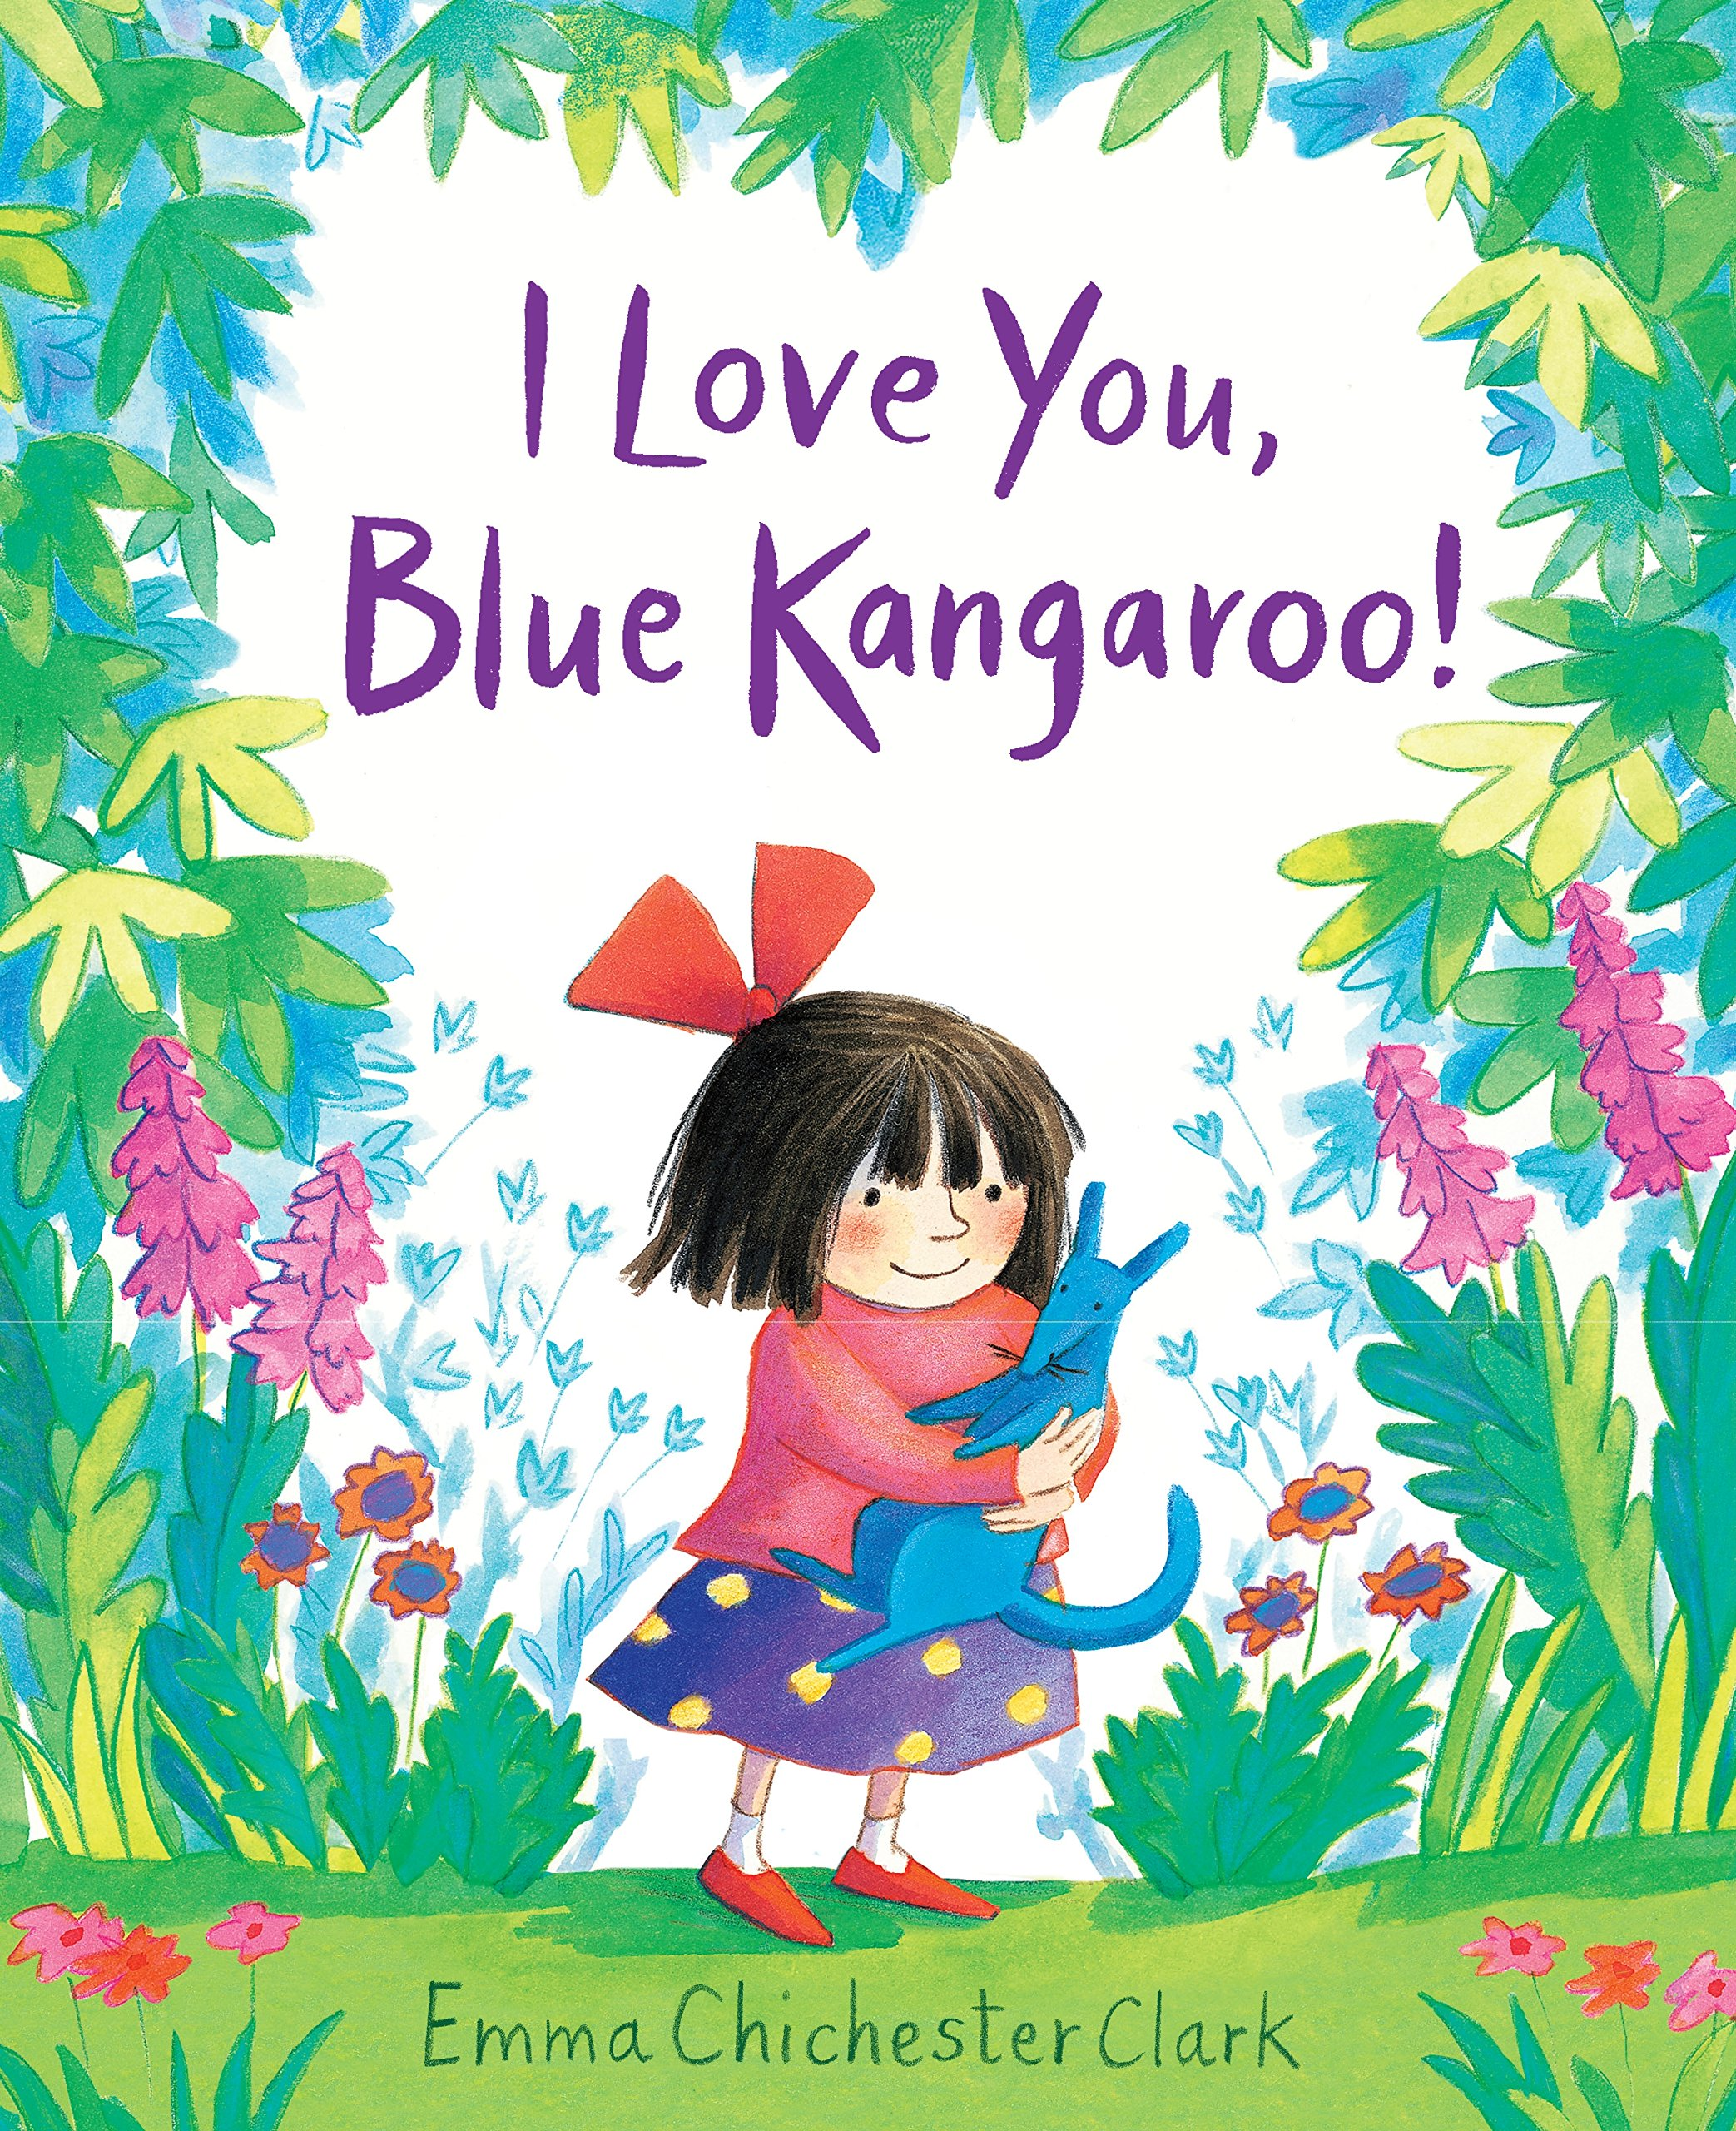 I Love You Blue Kangaroo Amazoncouk Emma Chichester Clark